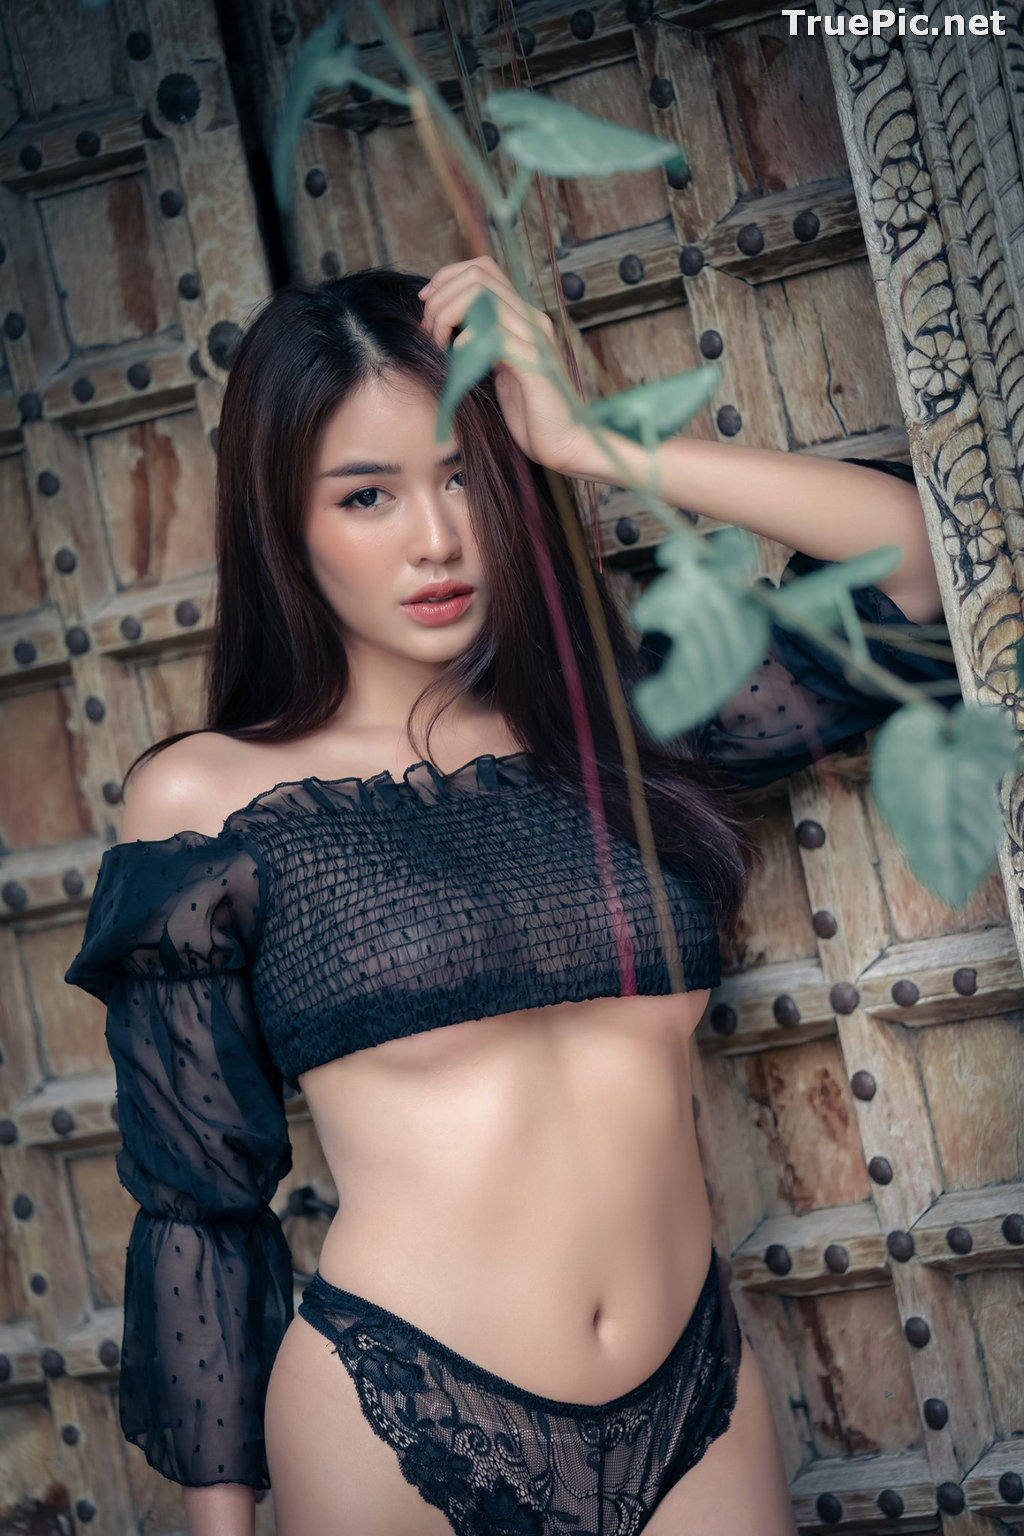 Image Thailand Model - Poompui Tarawongsatit - Beautiful Picture 2020 Collection - TruePic.net - Picture-9